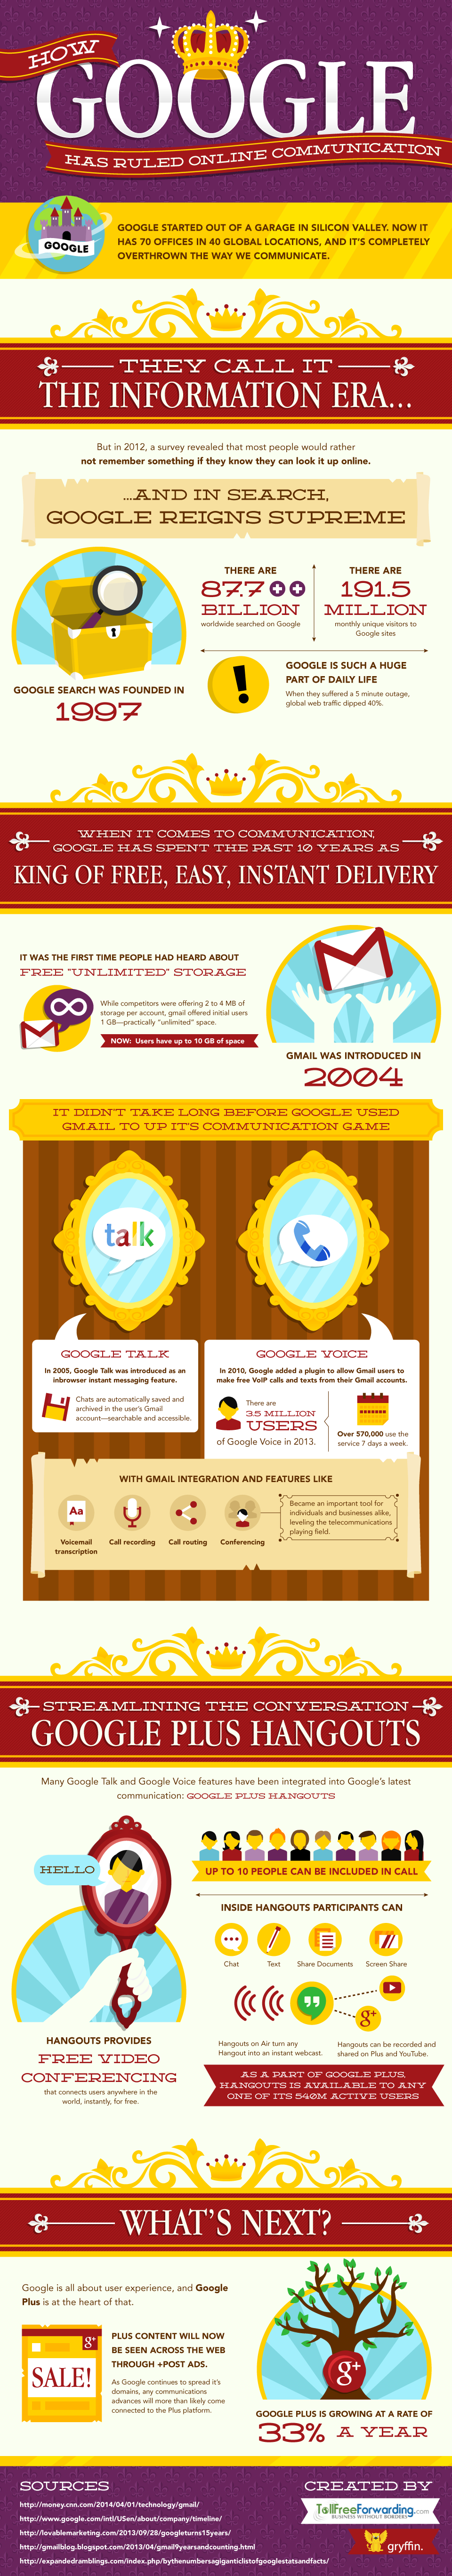 Infographic: How Google Has Ruled Online Communication